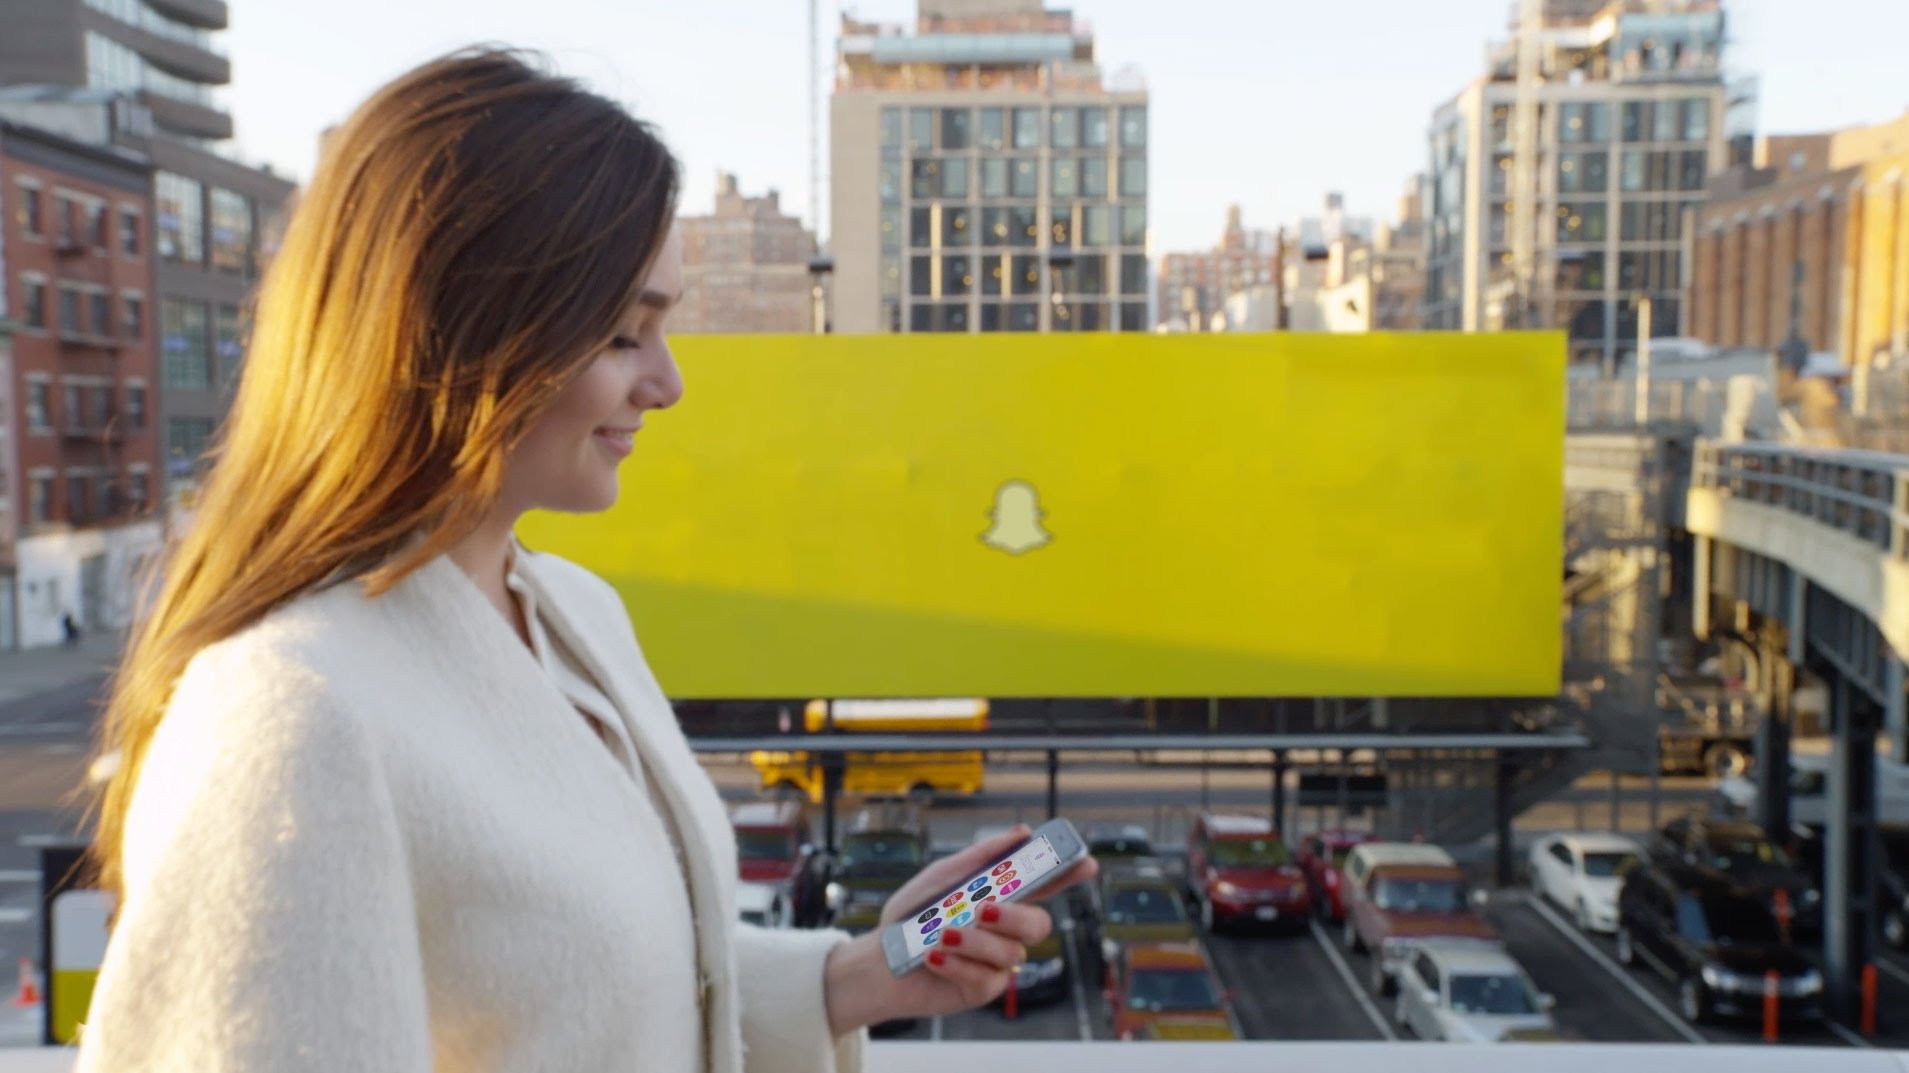 Can Snap Stock Bounce Back After Last Week's 24% Drop? | The